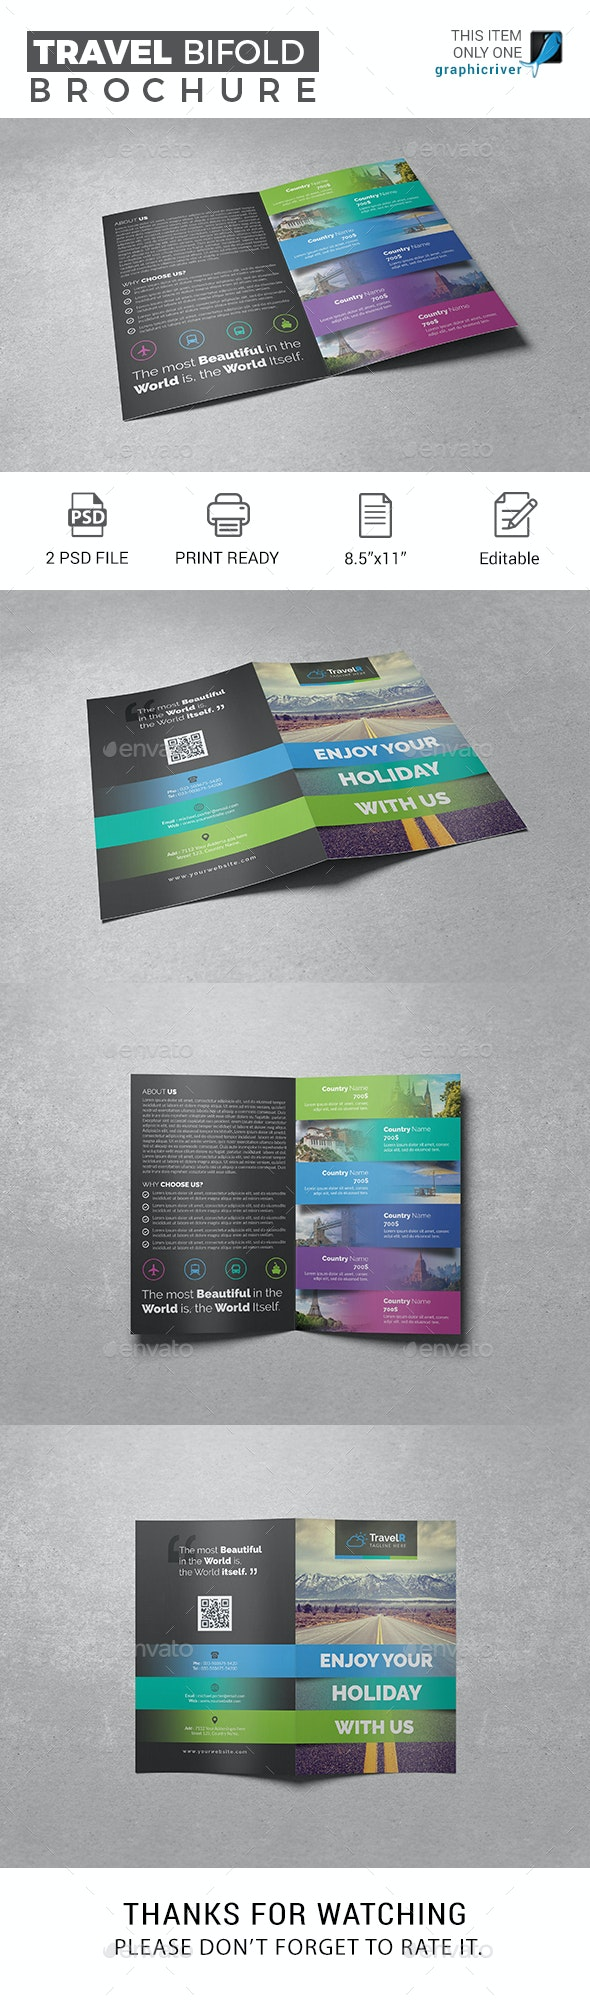 Travel Bifold Brochure - Corporate Brochures